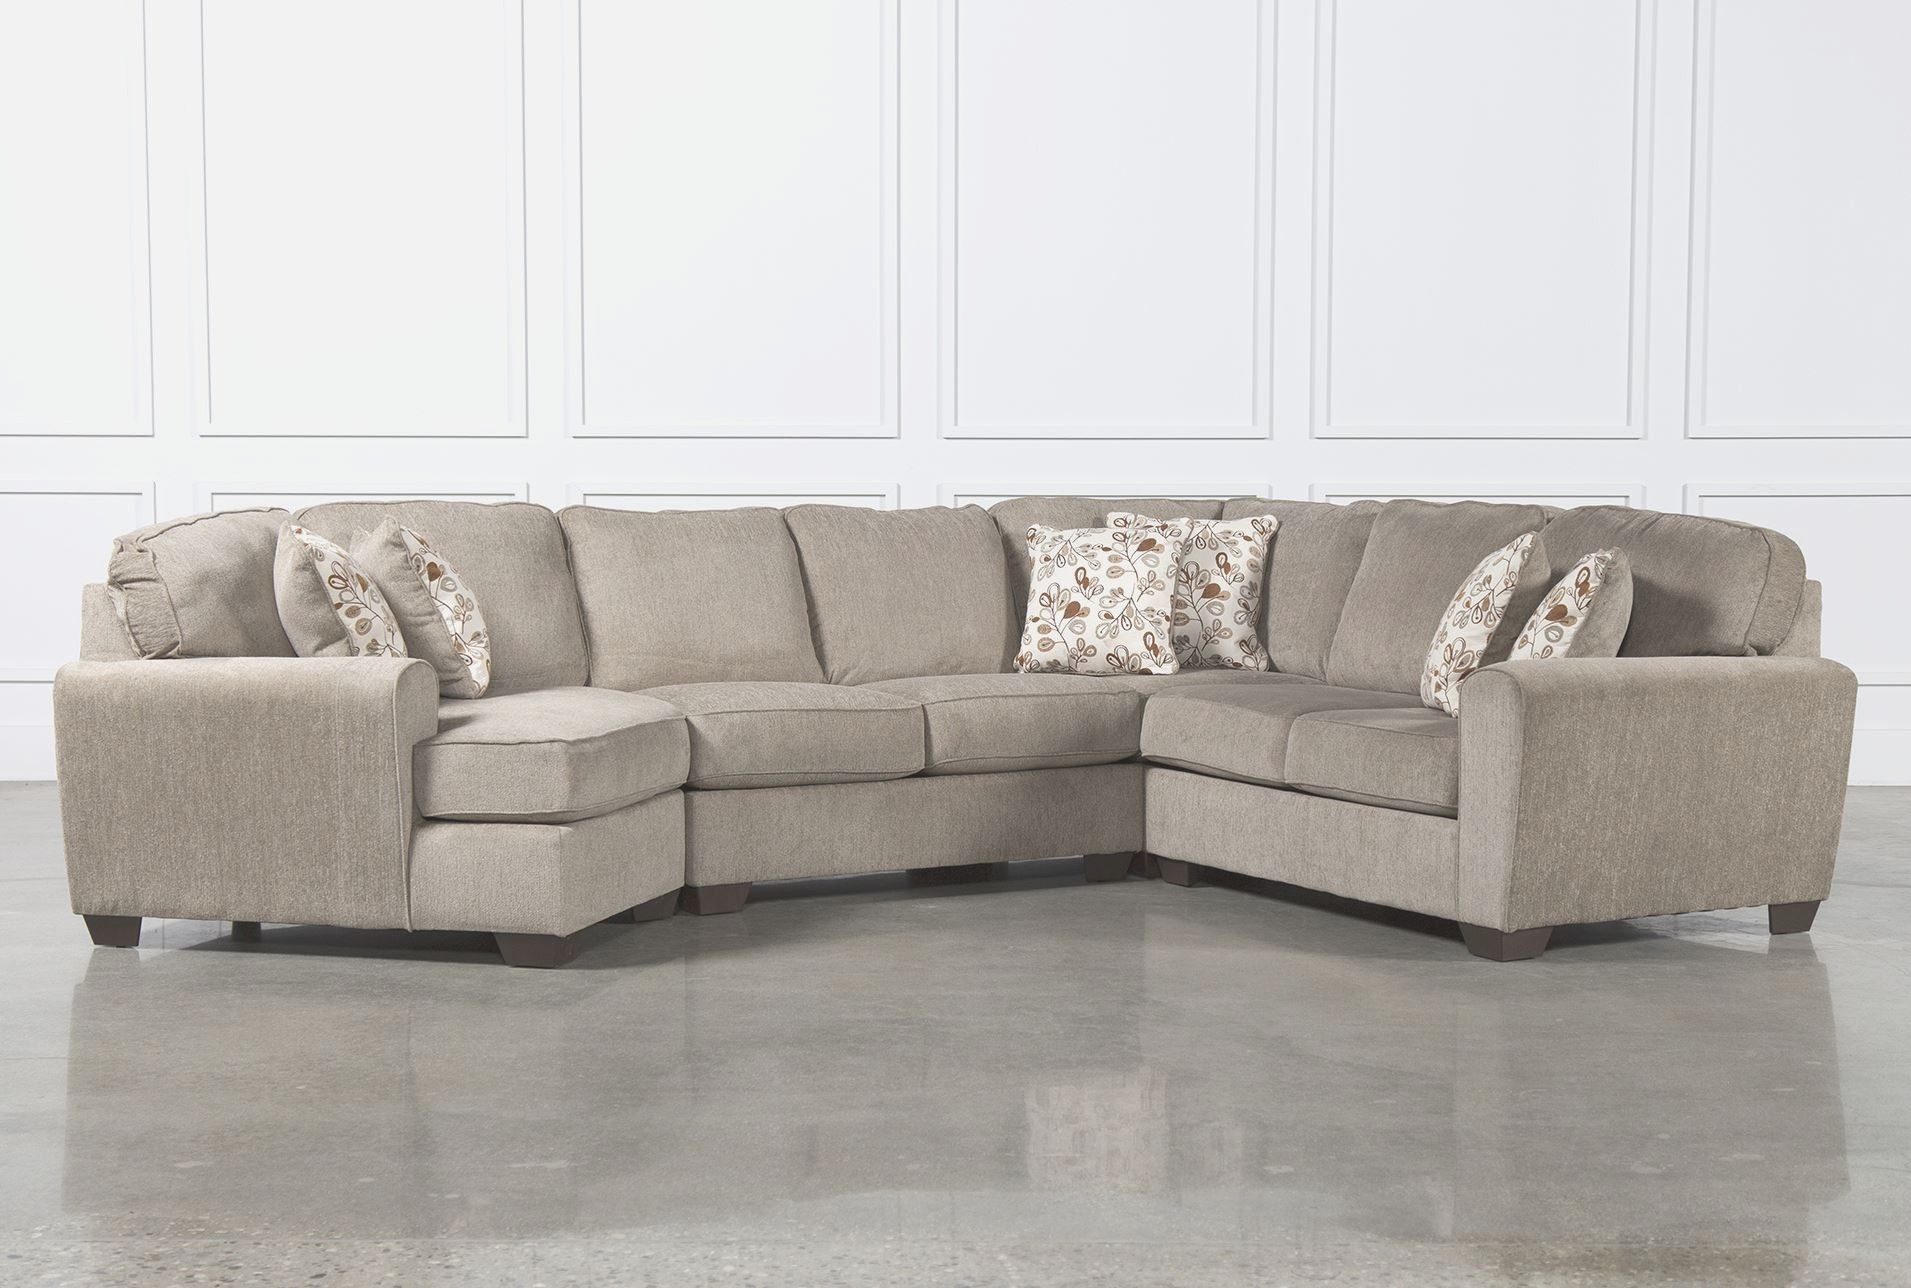 4 Piece Sectional Sofa With Chaise 4 Piece Sectional Sofa With